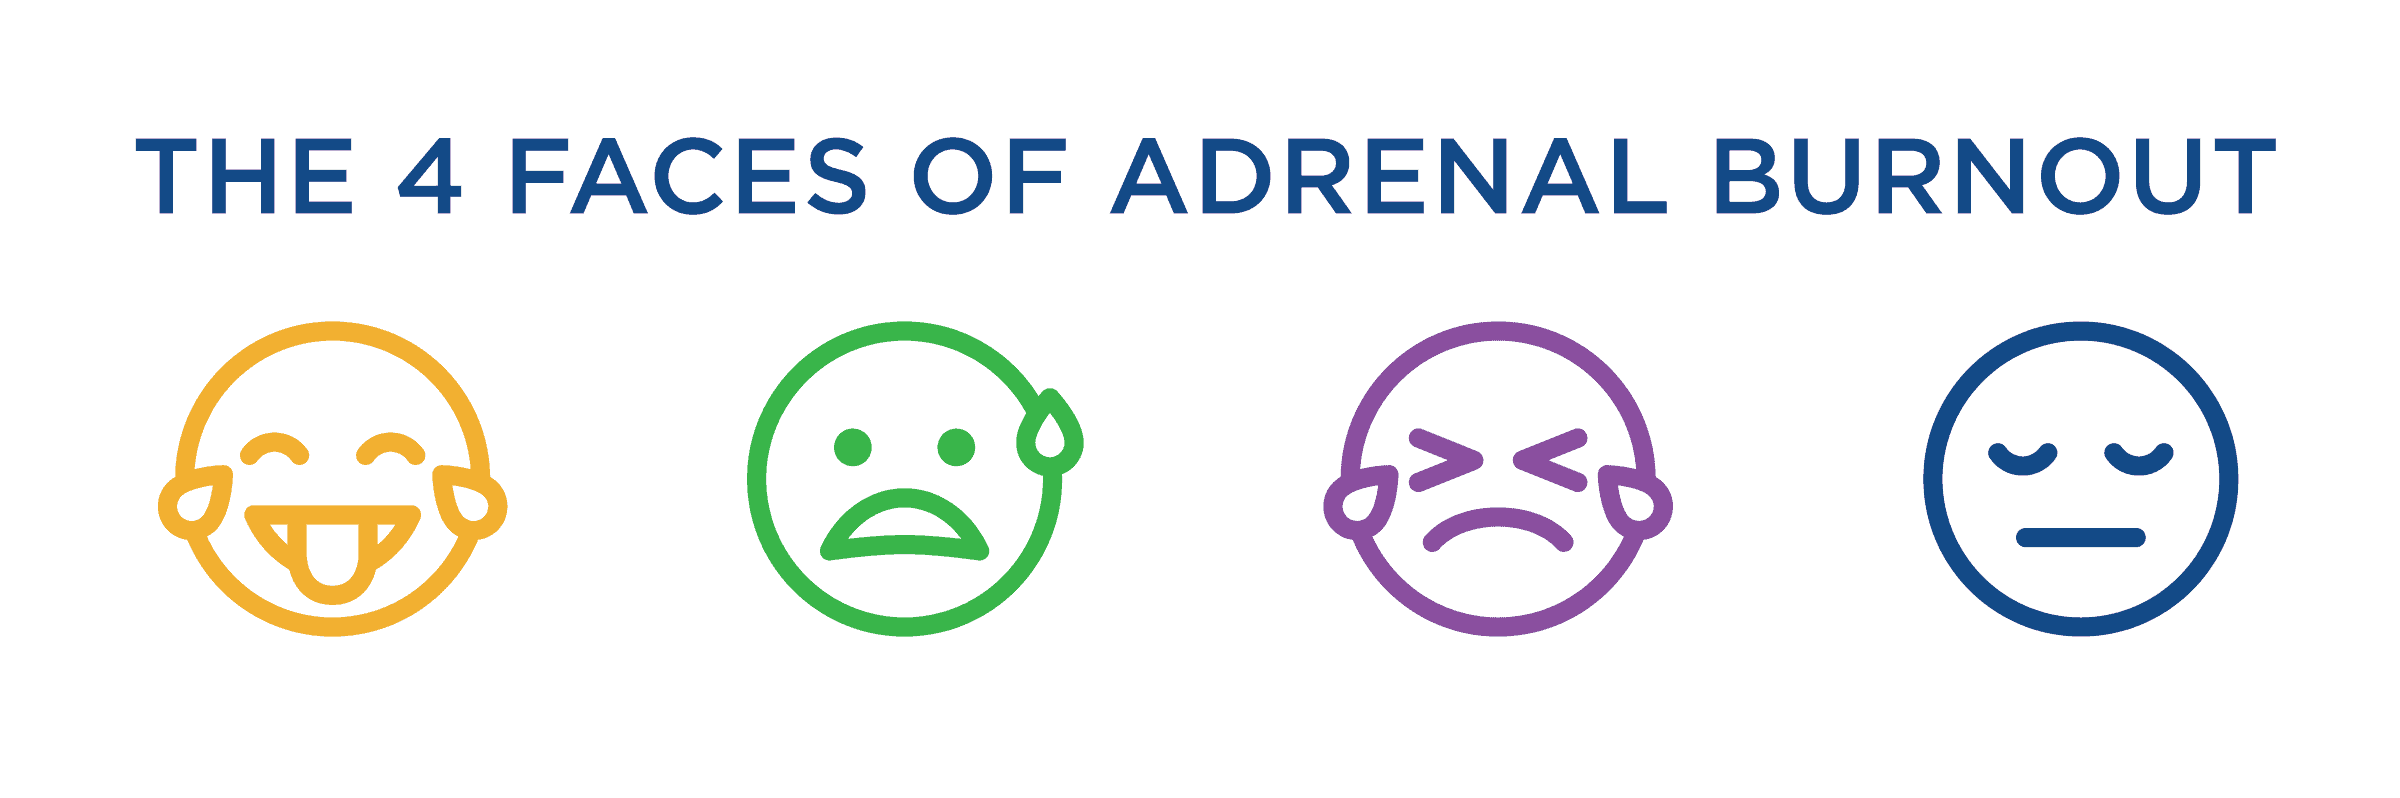 4 Faces Of Adrenal Burnout Header Featured Image